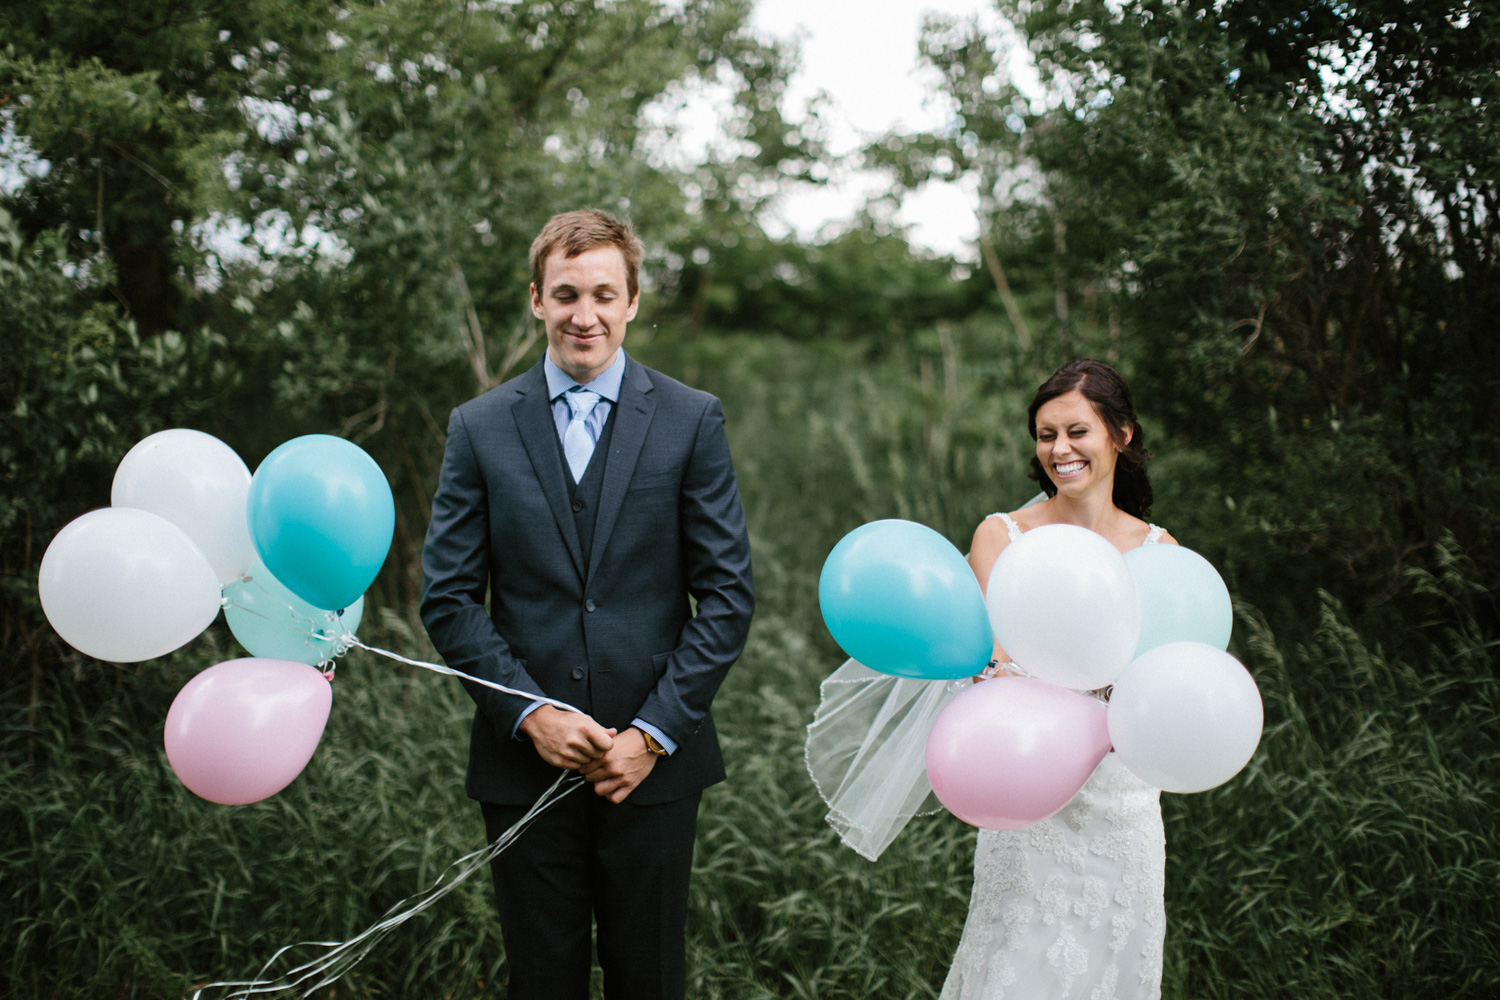 Outdoor_Wedding_SiouxFalls_MaryJoWegnerArboretum_Photographer_Calli&Jon_038.jpg